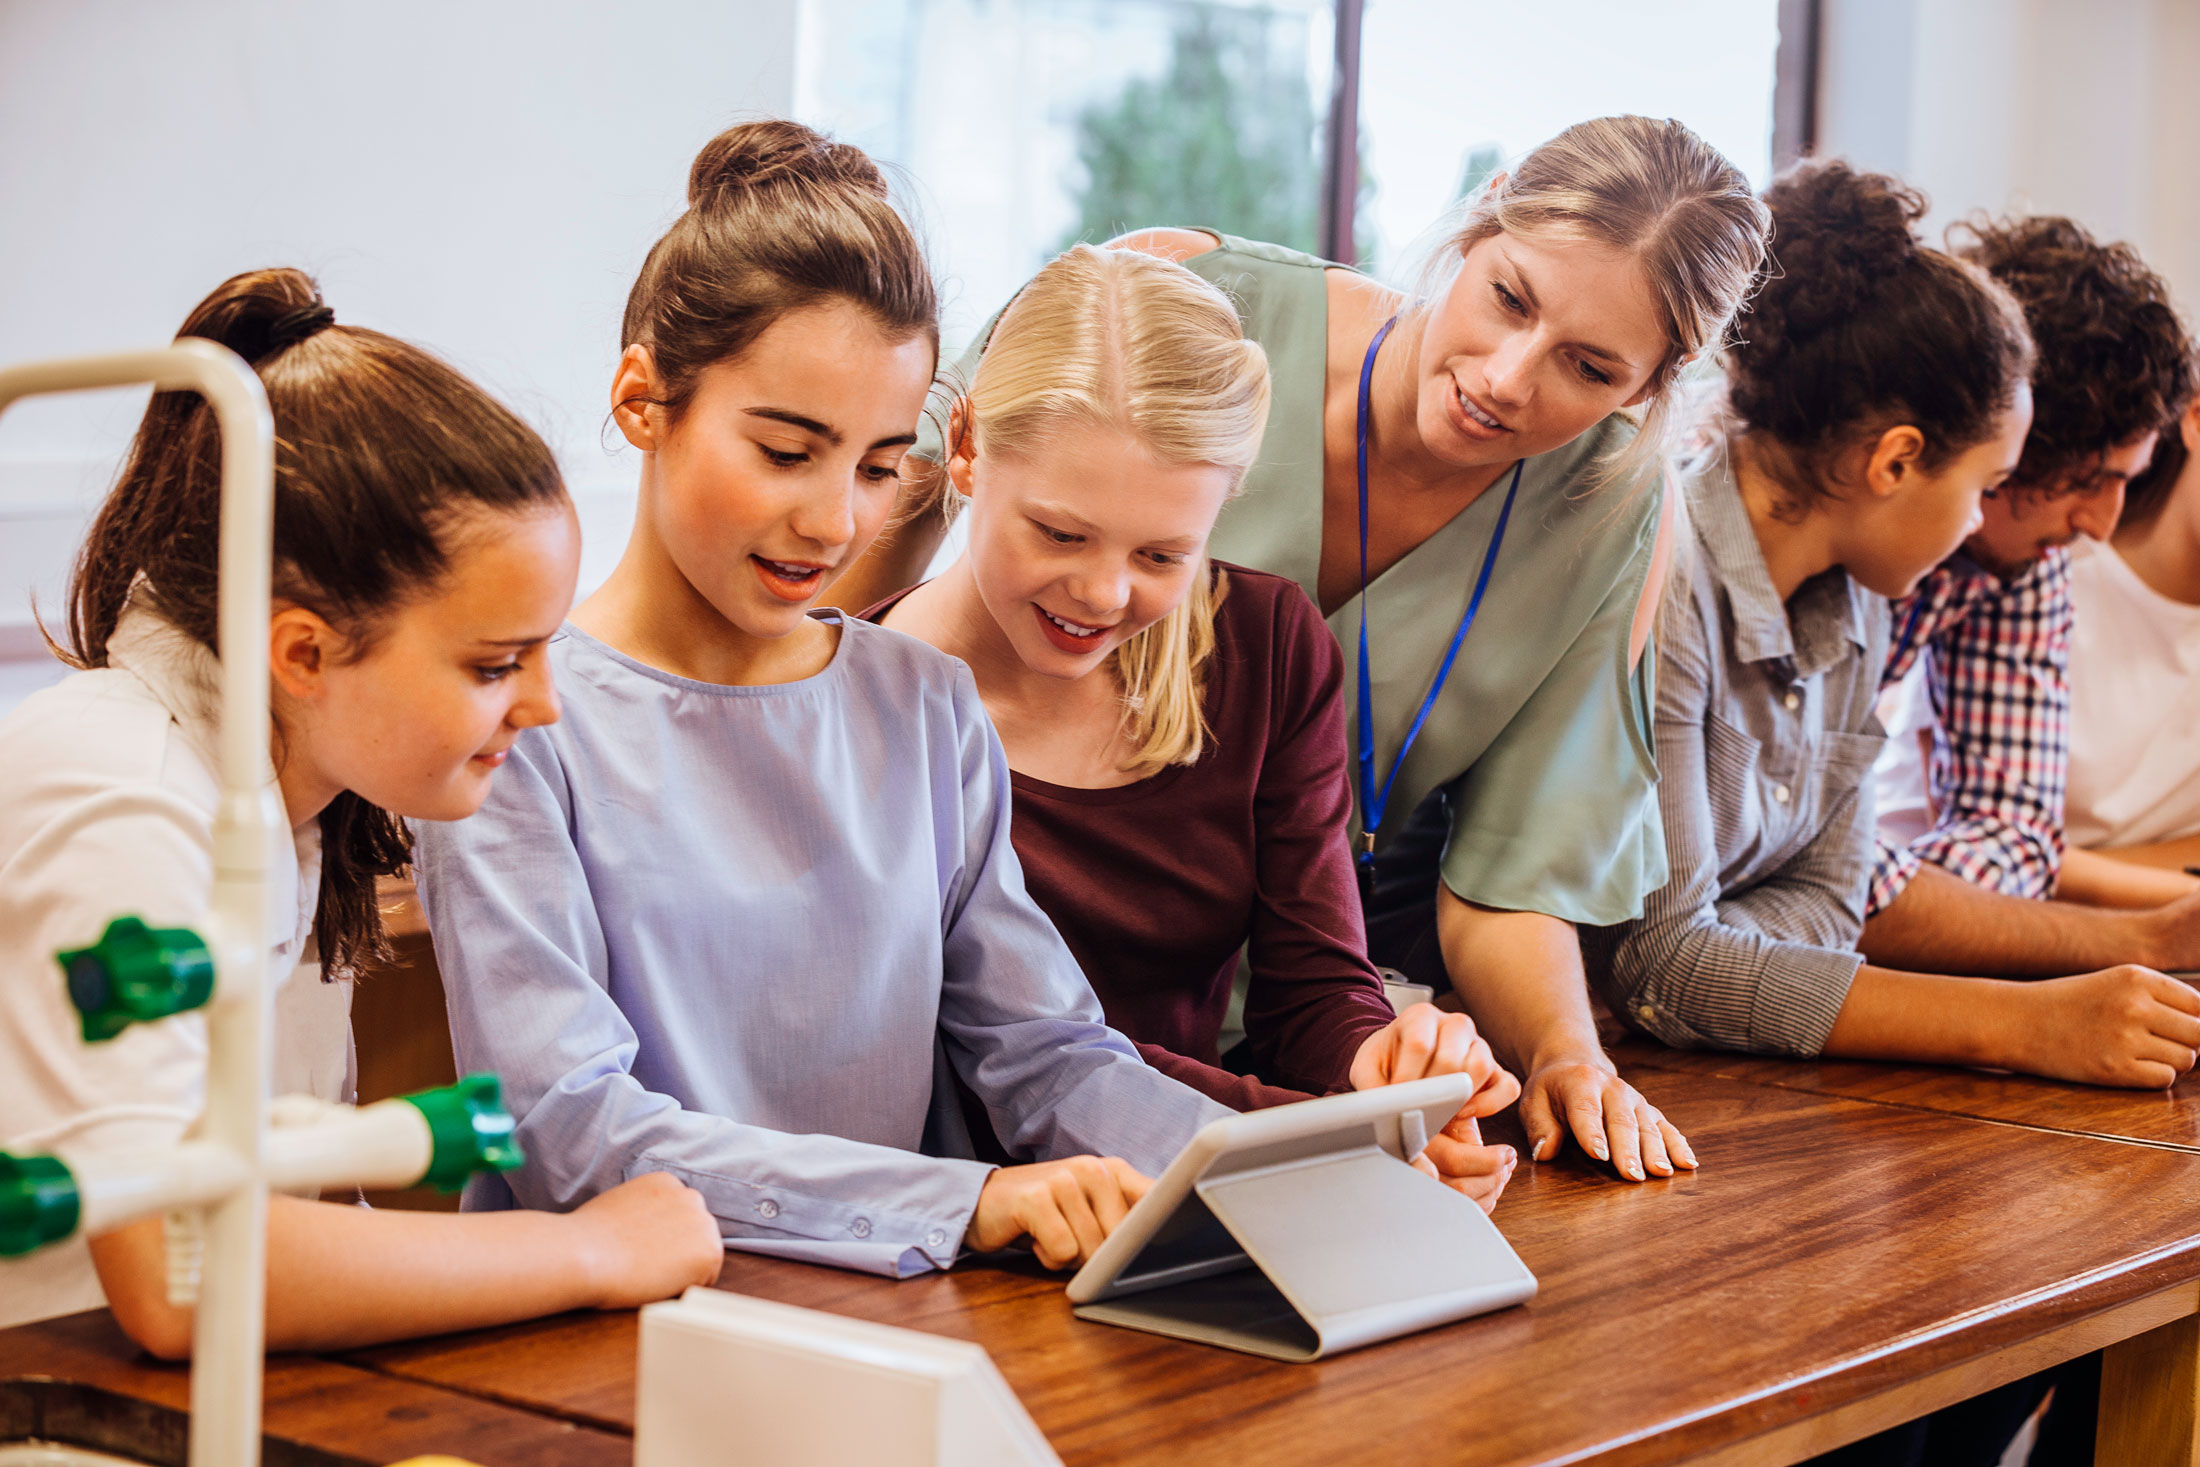 group-kids-science-classroom-using-tablet